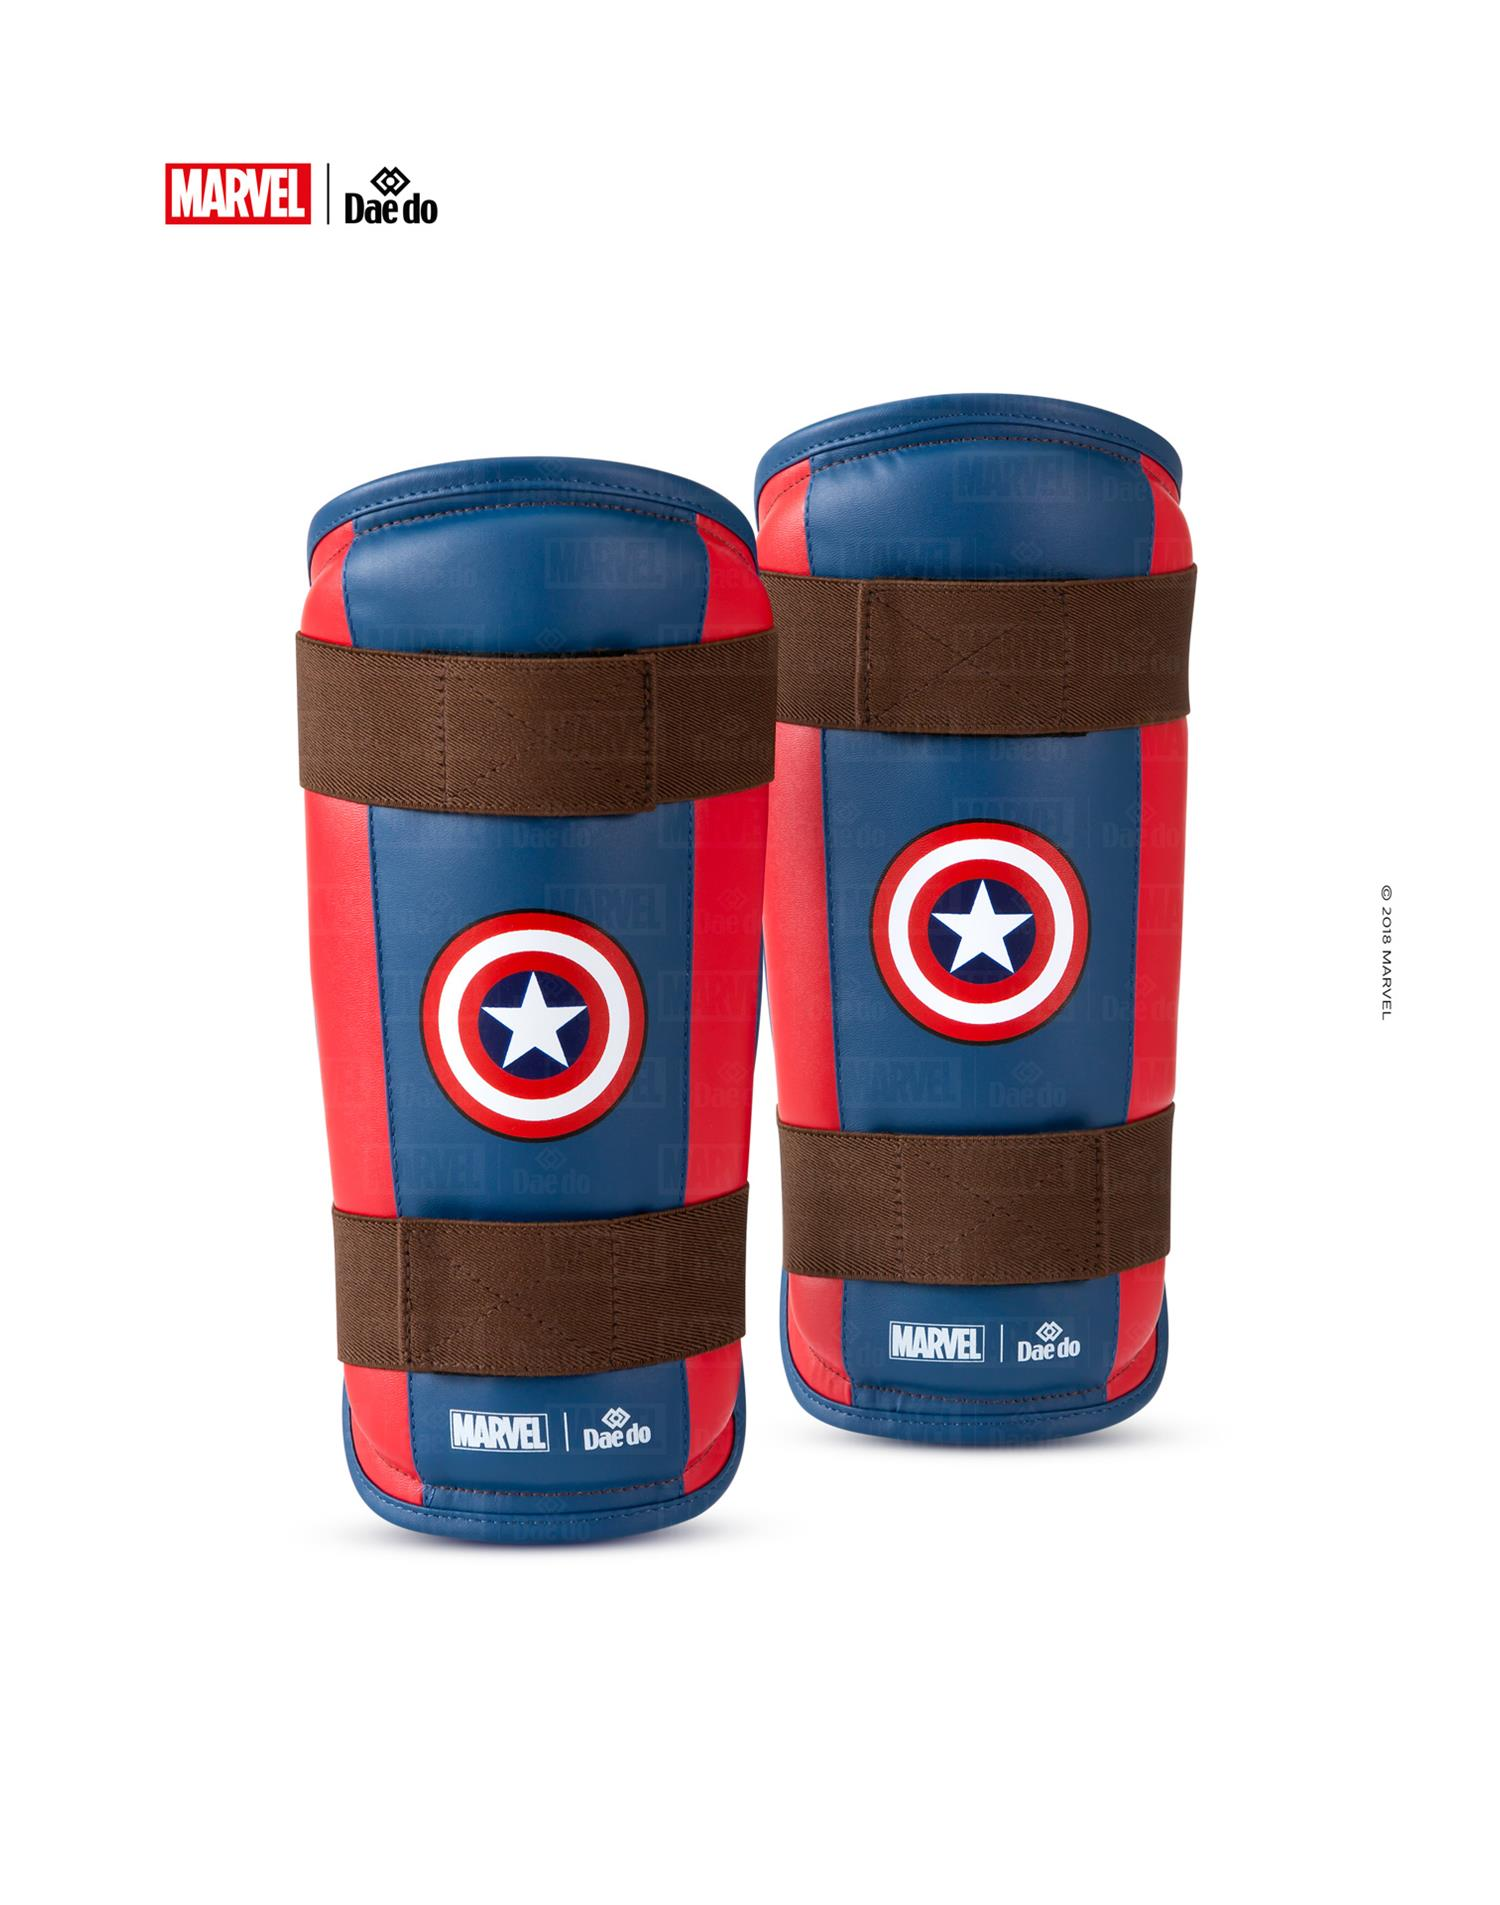 Dae Do Parastinco Marvel Capitan America (XS)